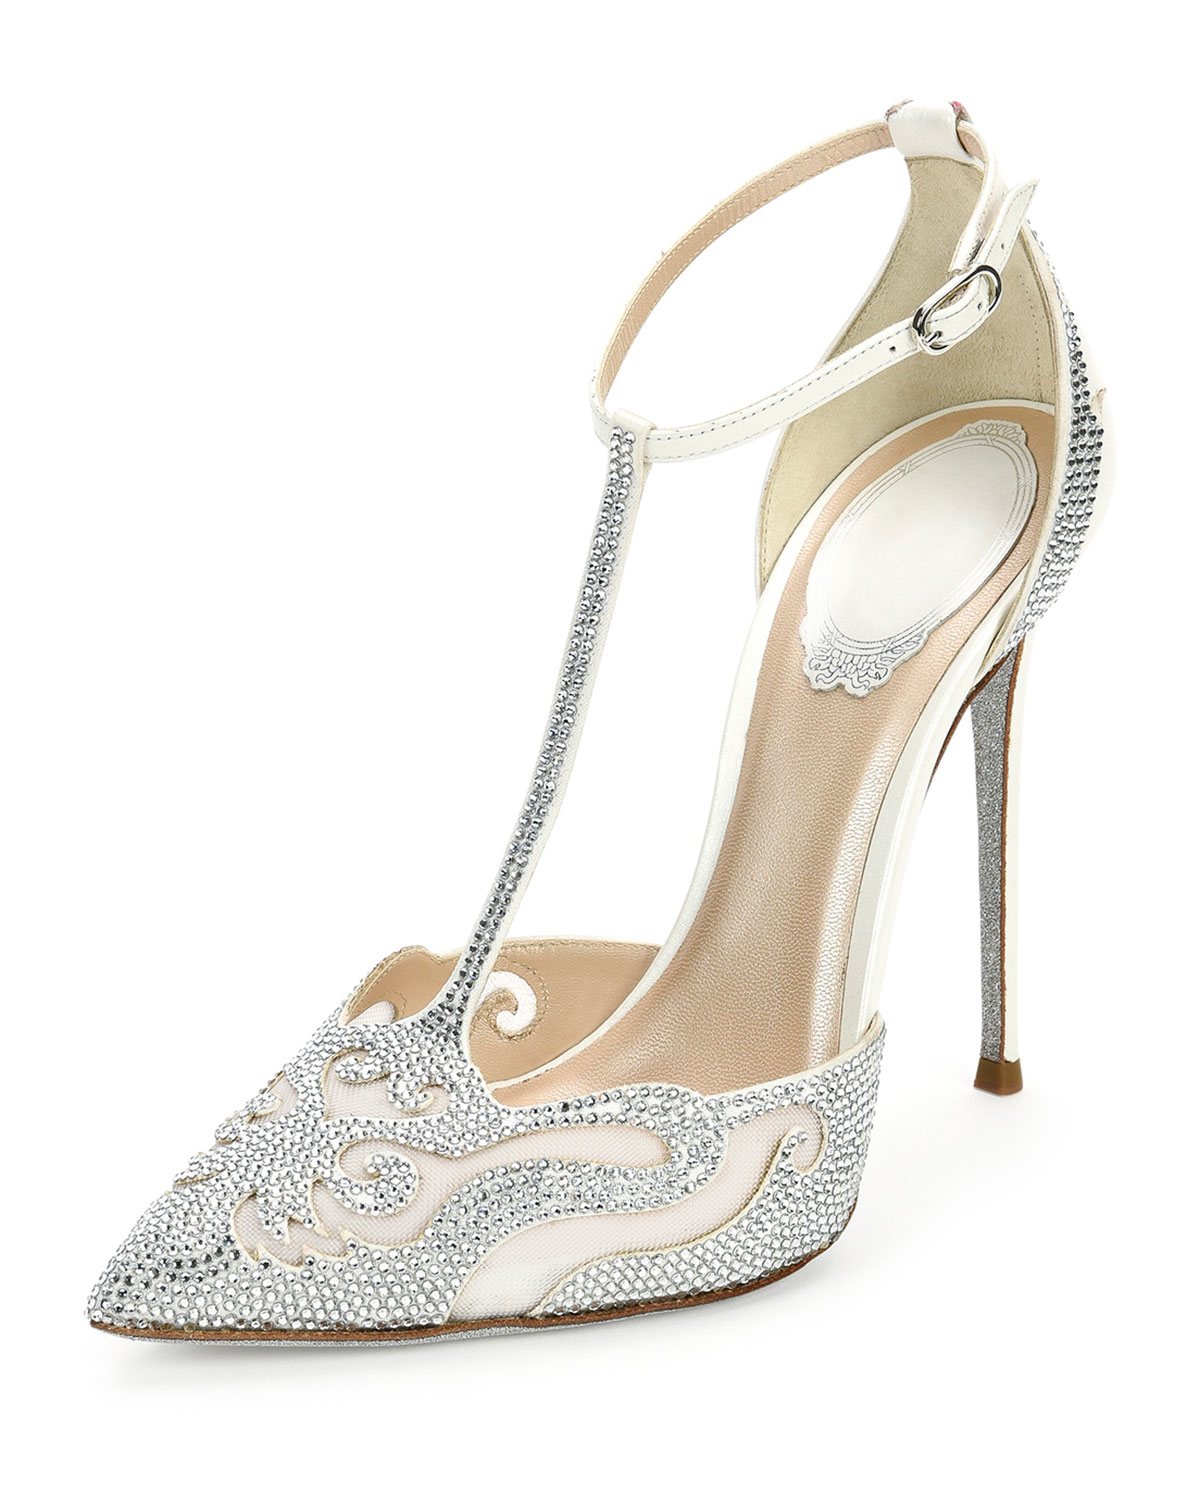 0a35f85d6e1227 Lyst - Rene Caovilla Crystal-Embellished T-Bar Pumps in White